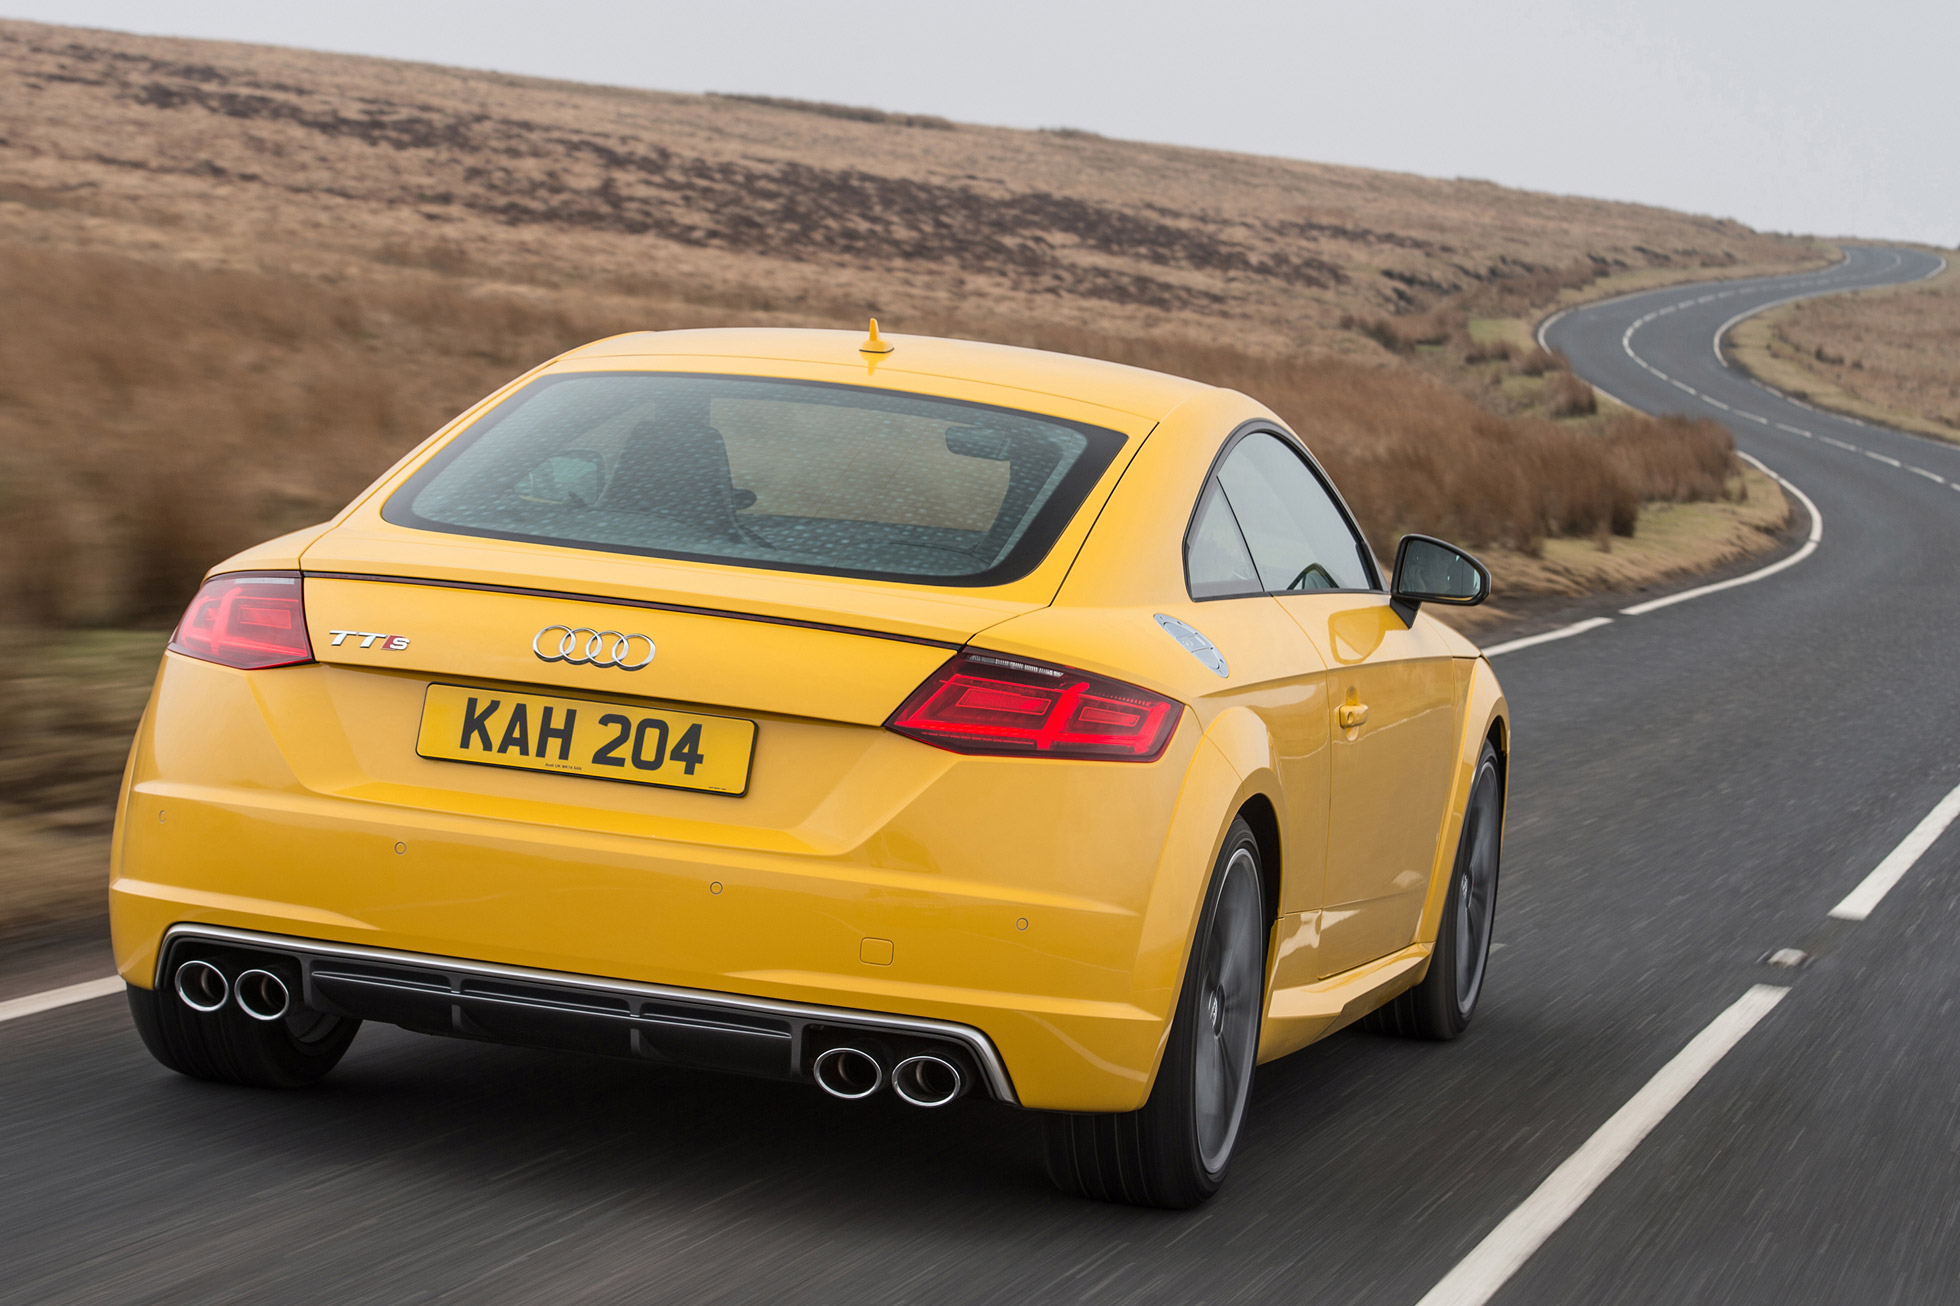 What's the Audi TTS like to drive?